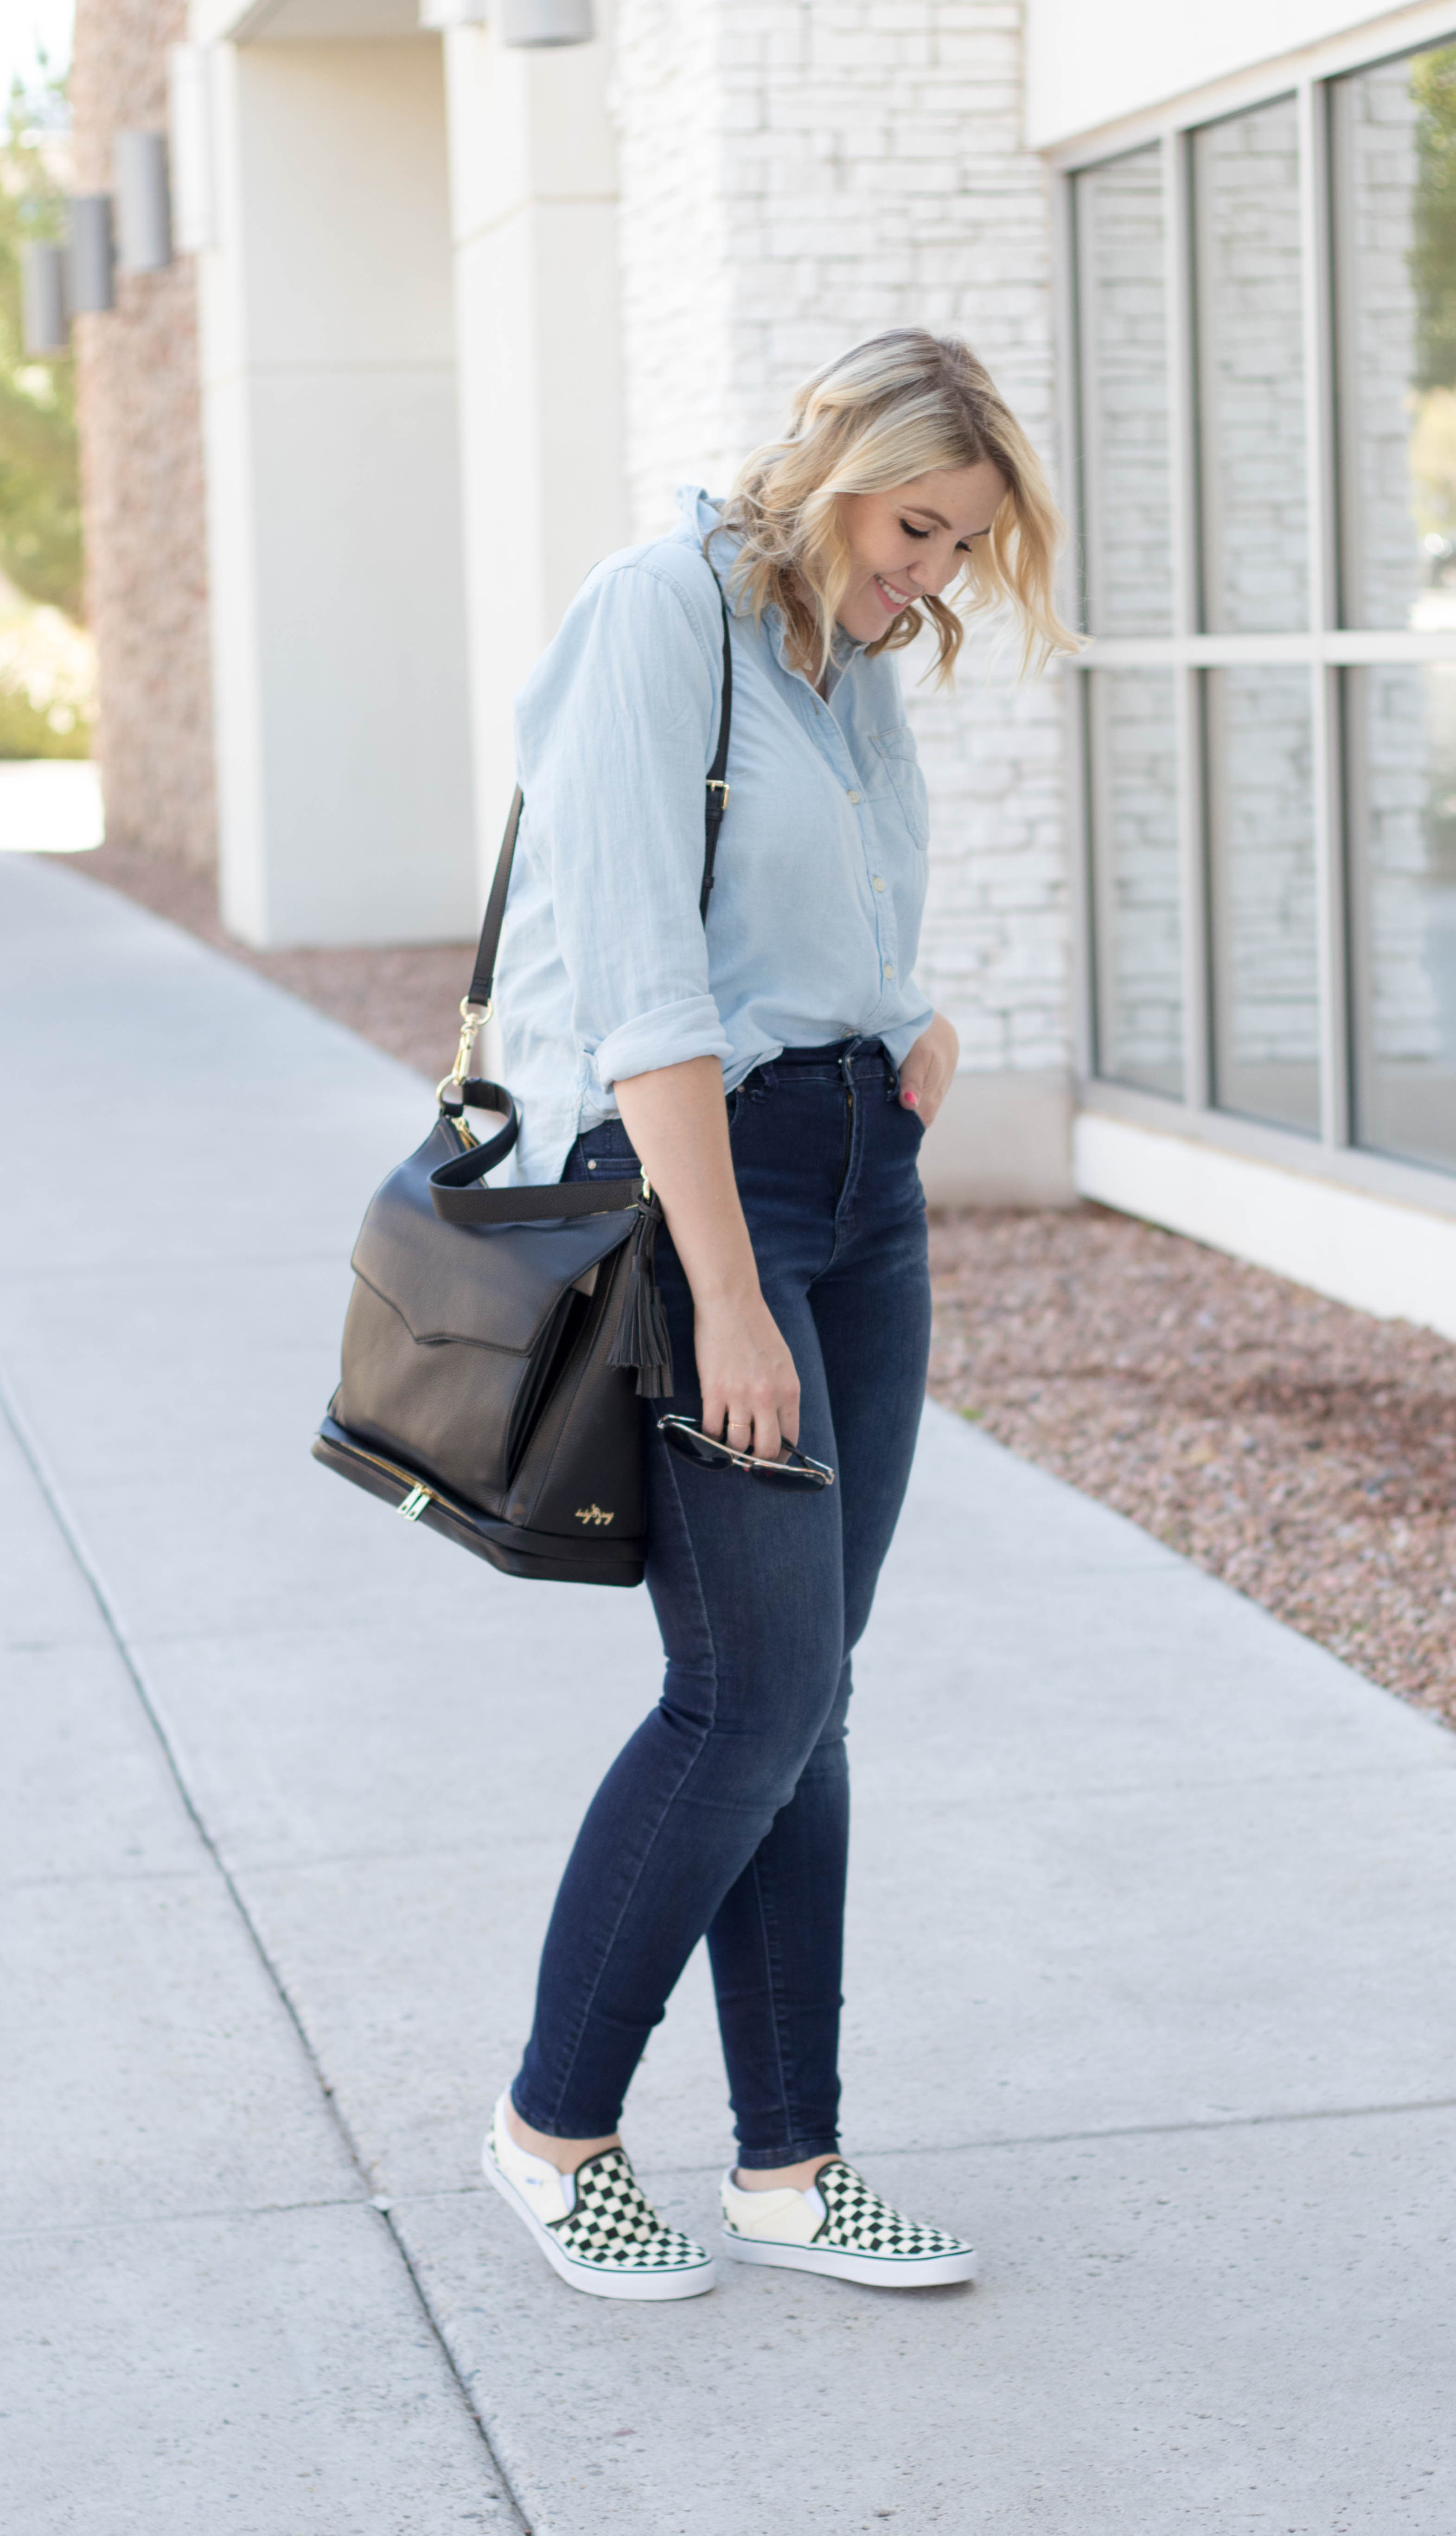 casual mom style outfit #momstyle #styleblogger #chambray #oldnavystyle